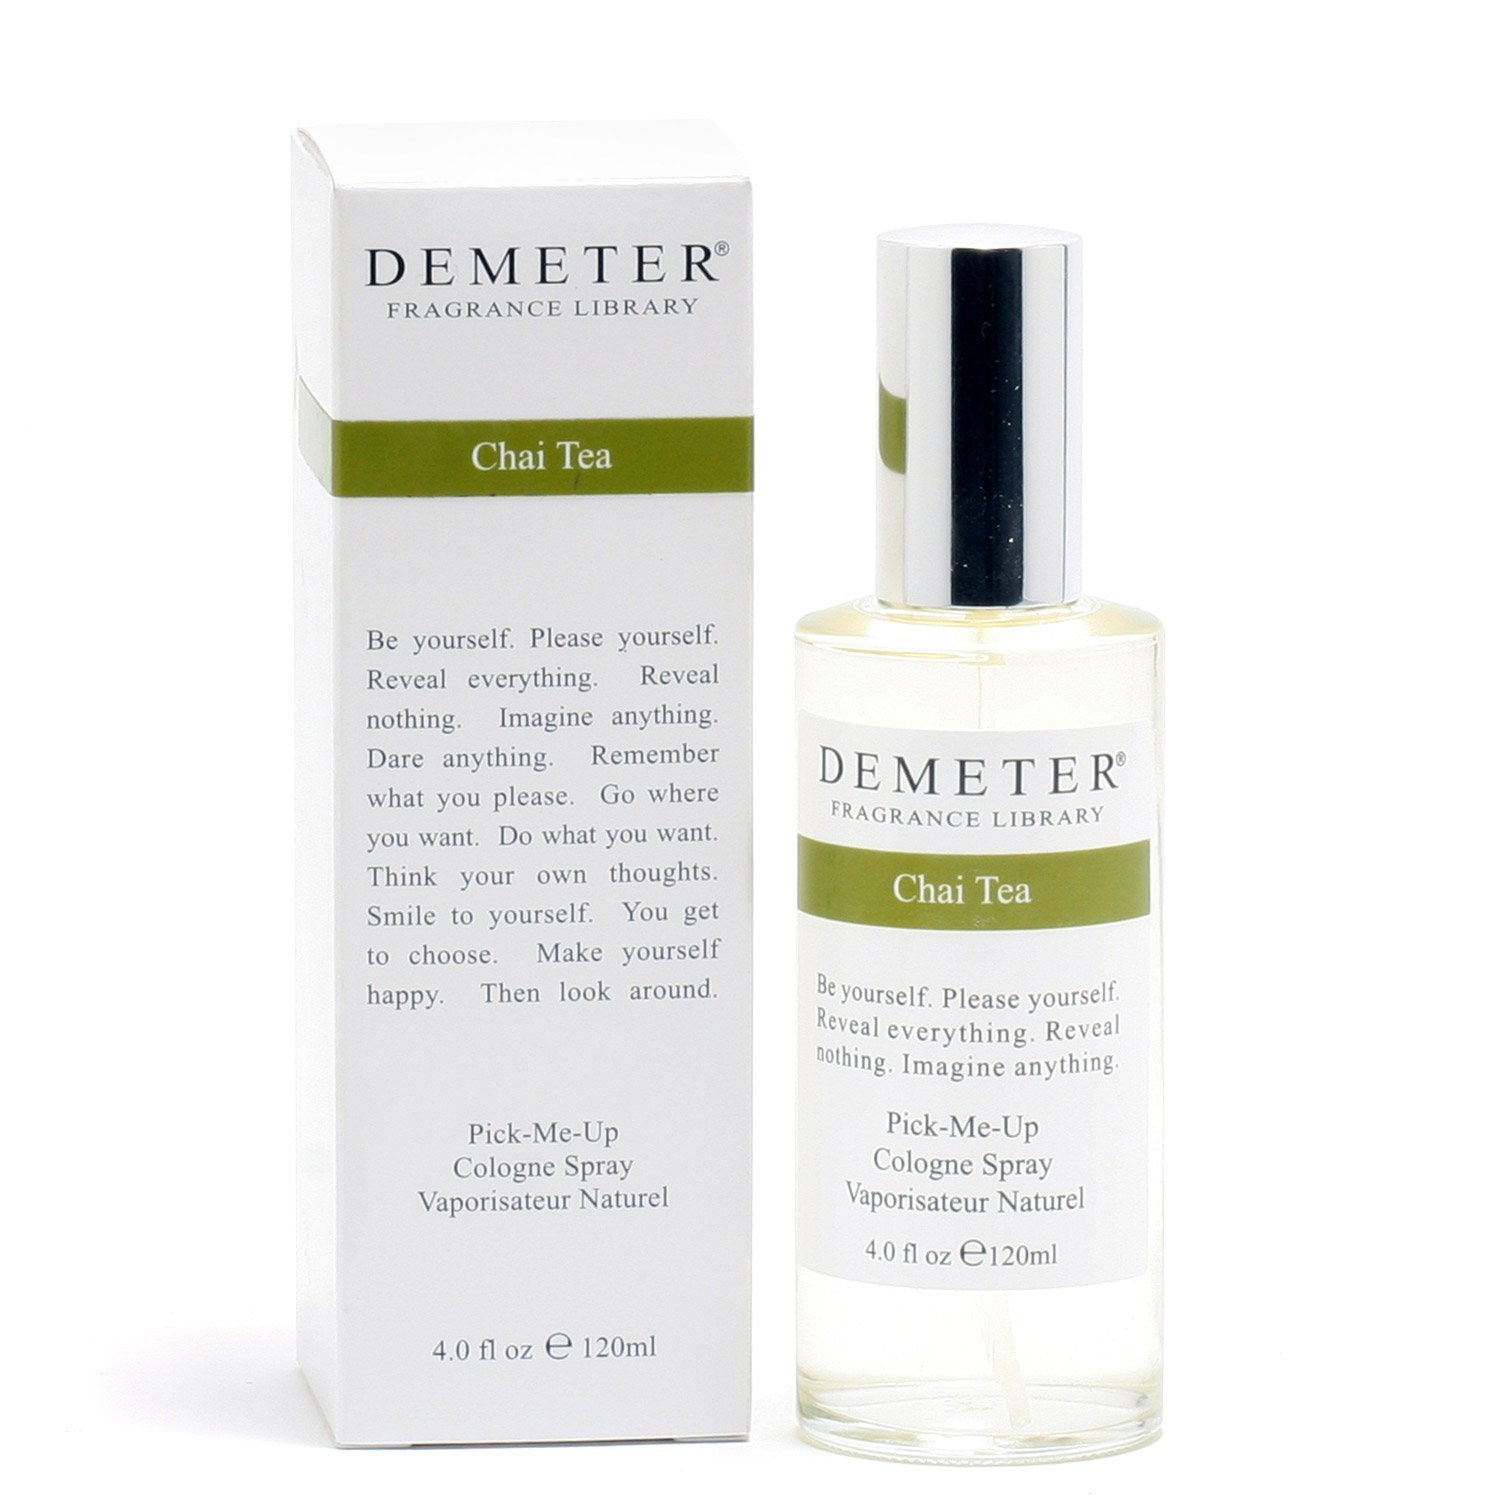 Perfume - DEMETER CHAI TEA FOR WOMEN - COLOGNE SPRAY, 4.0 OZ